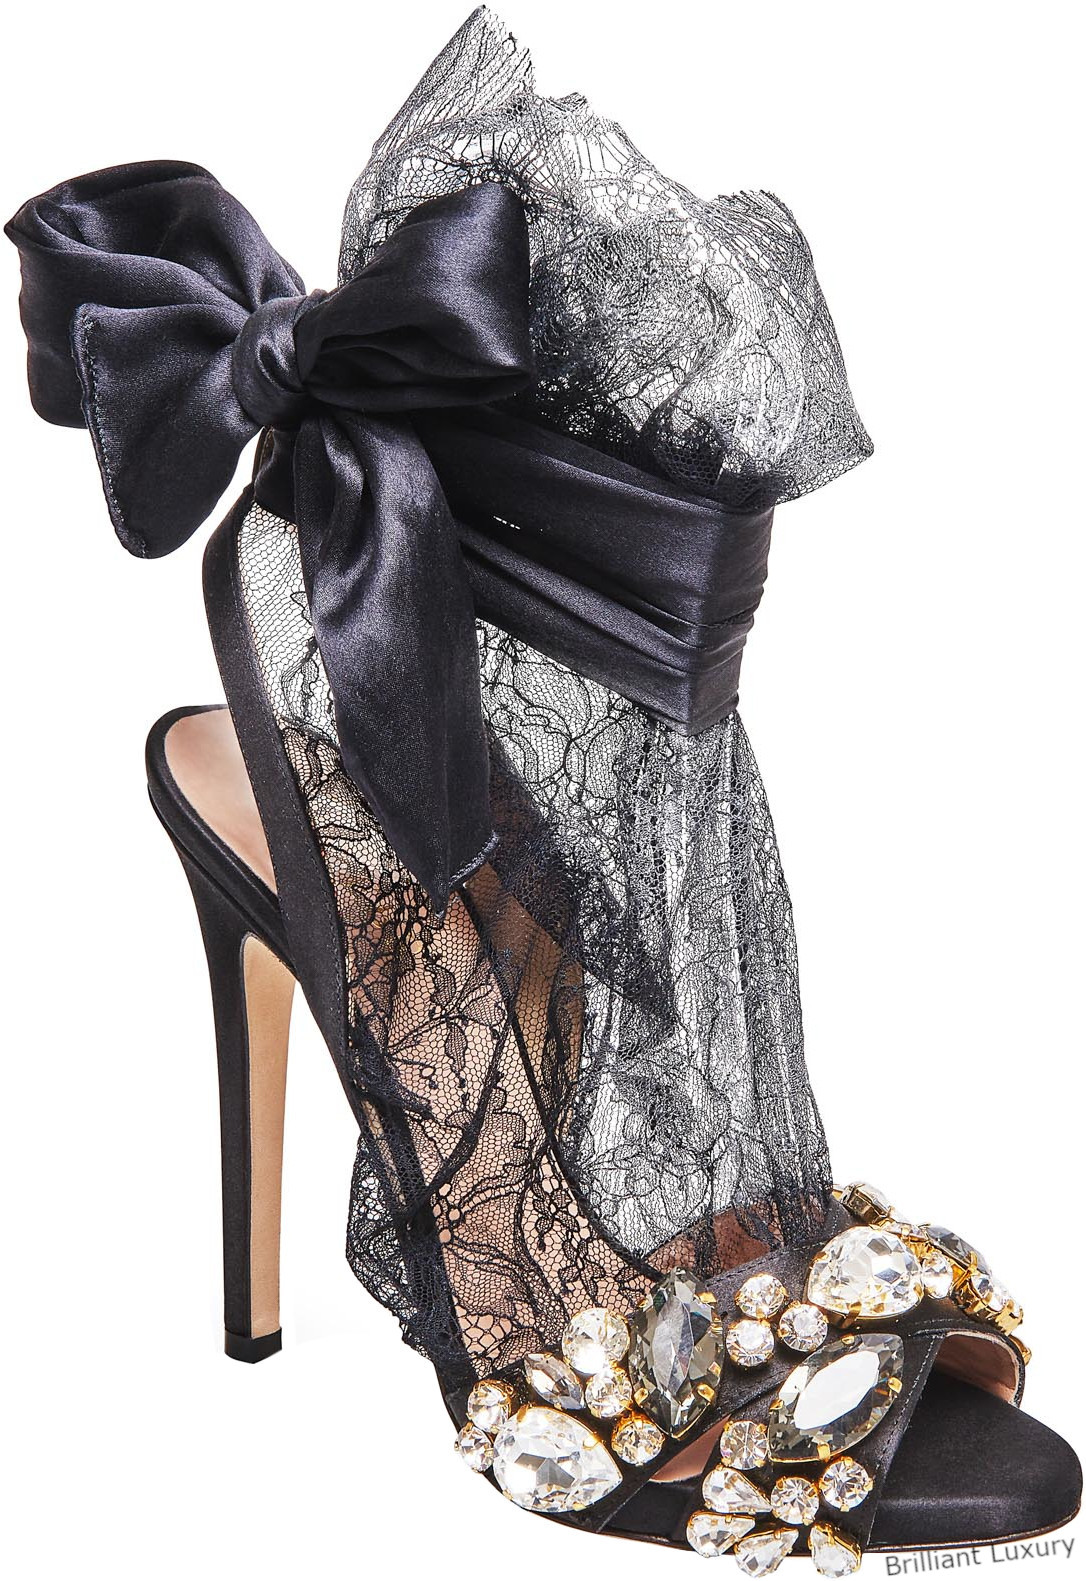 Gedebe bejeweled satin lace sandals in black